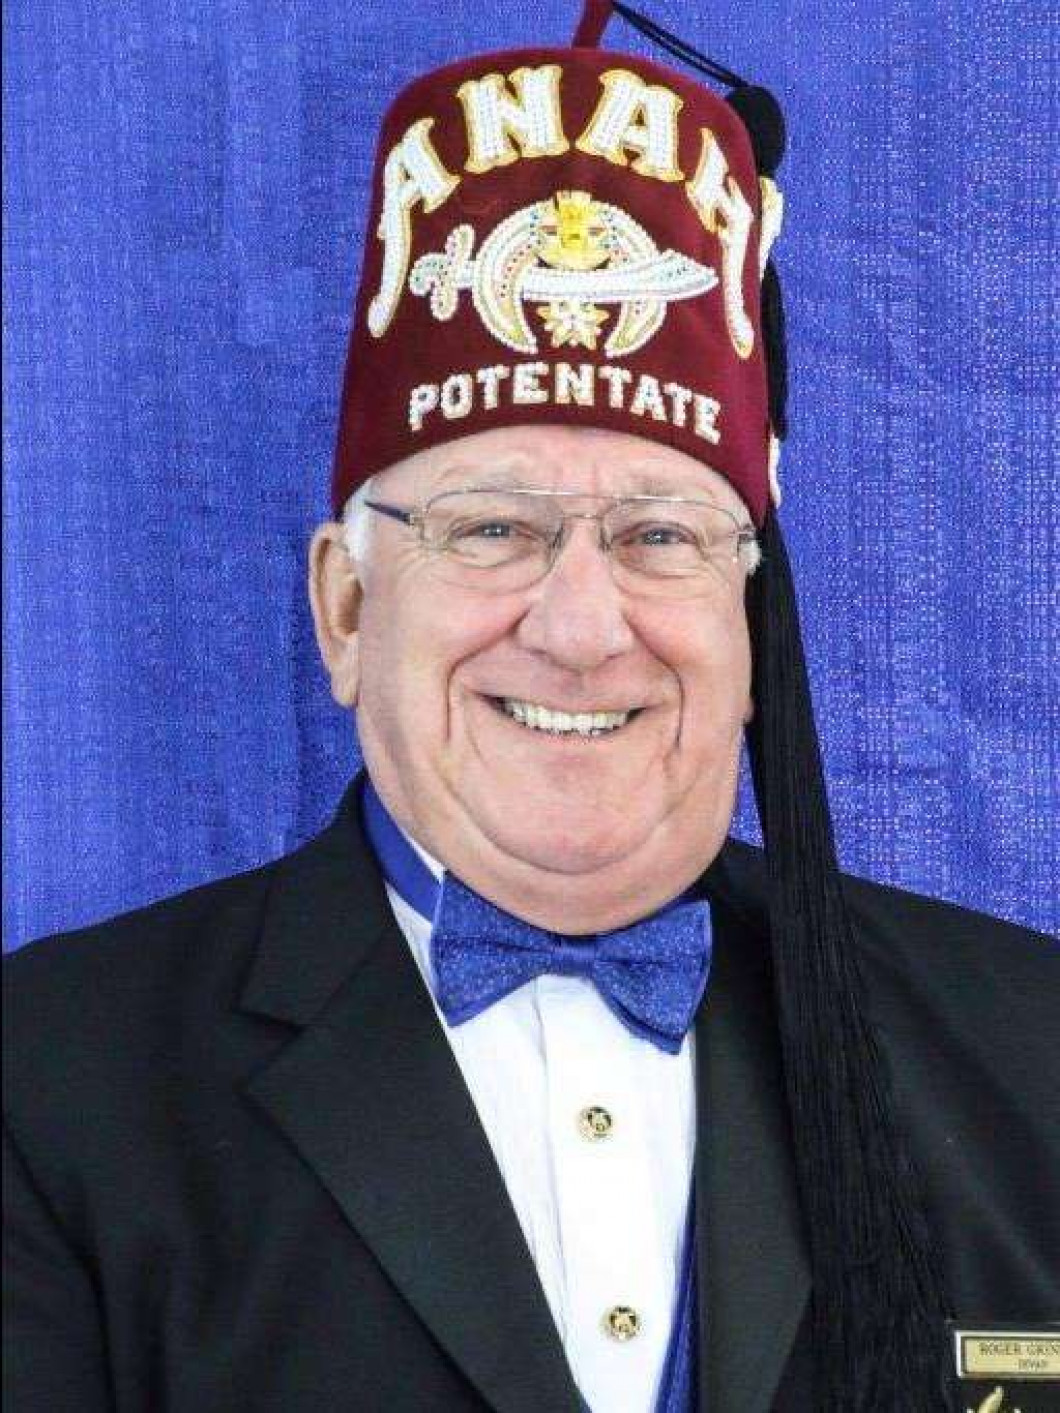 Illustrious Potentate Anah Shrine 2019 Sir Roger Grindle